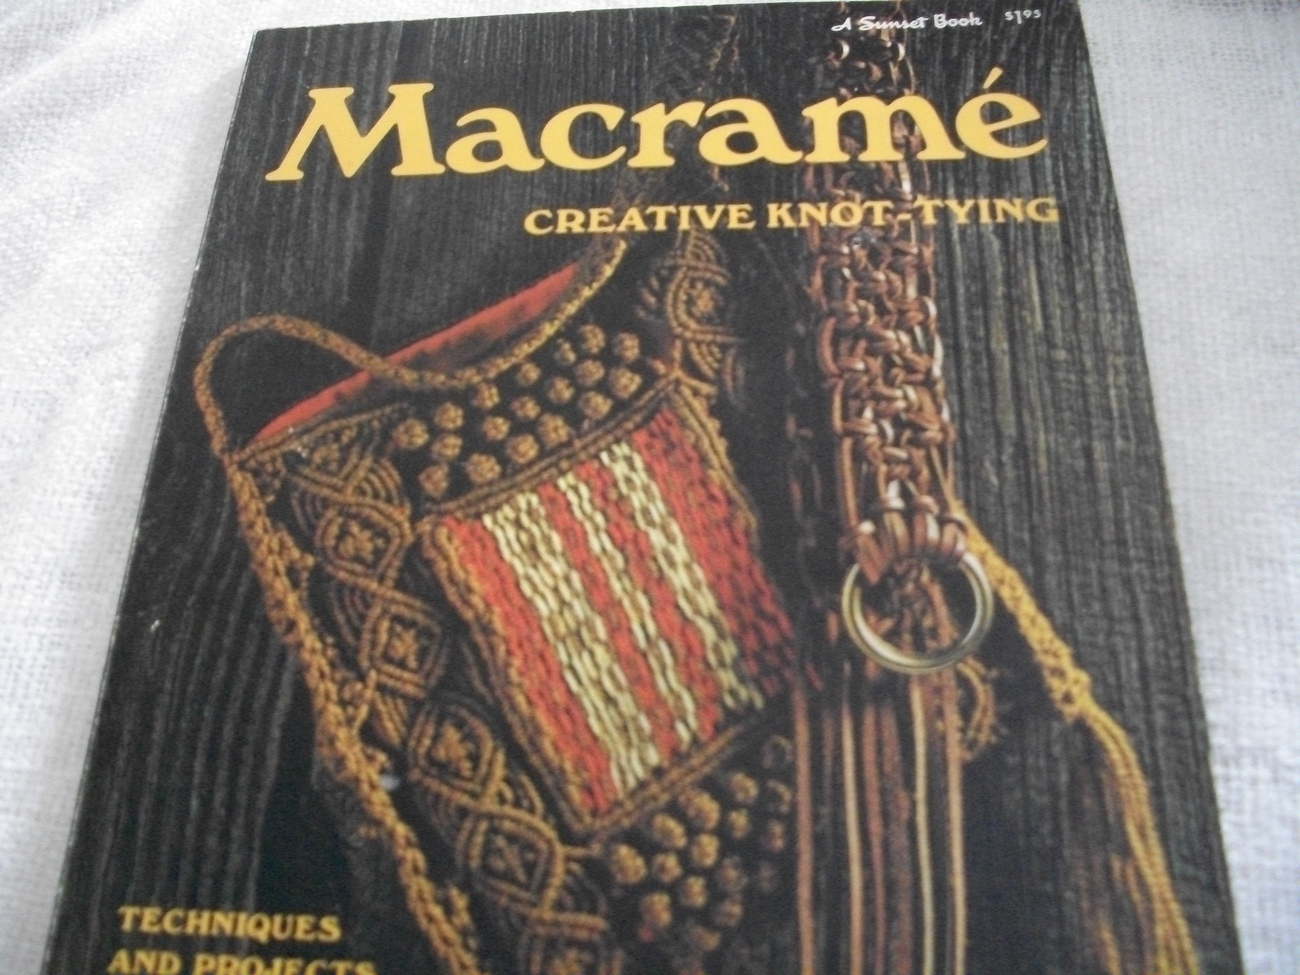 Primary image for Macrame Creative Knot-Tying Book